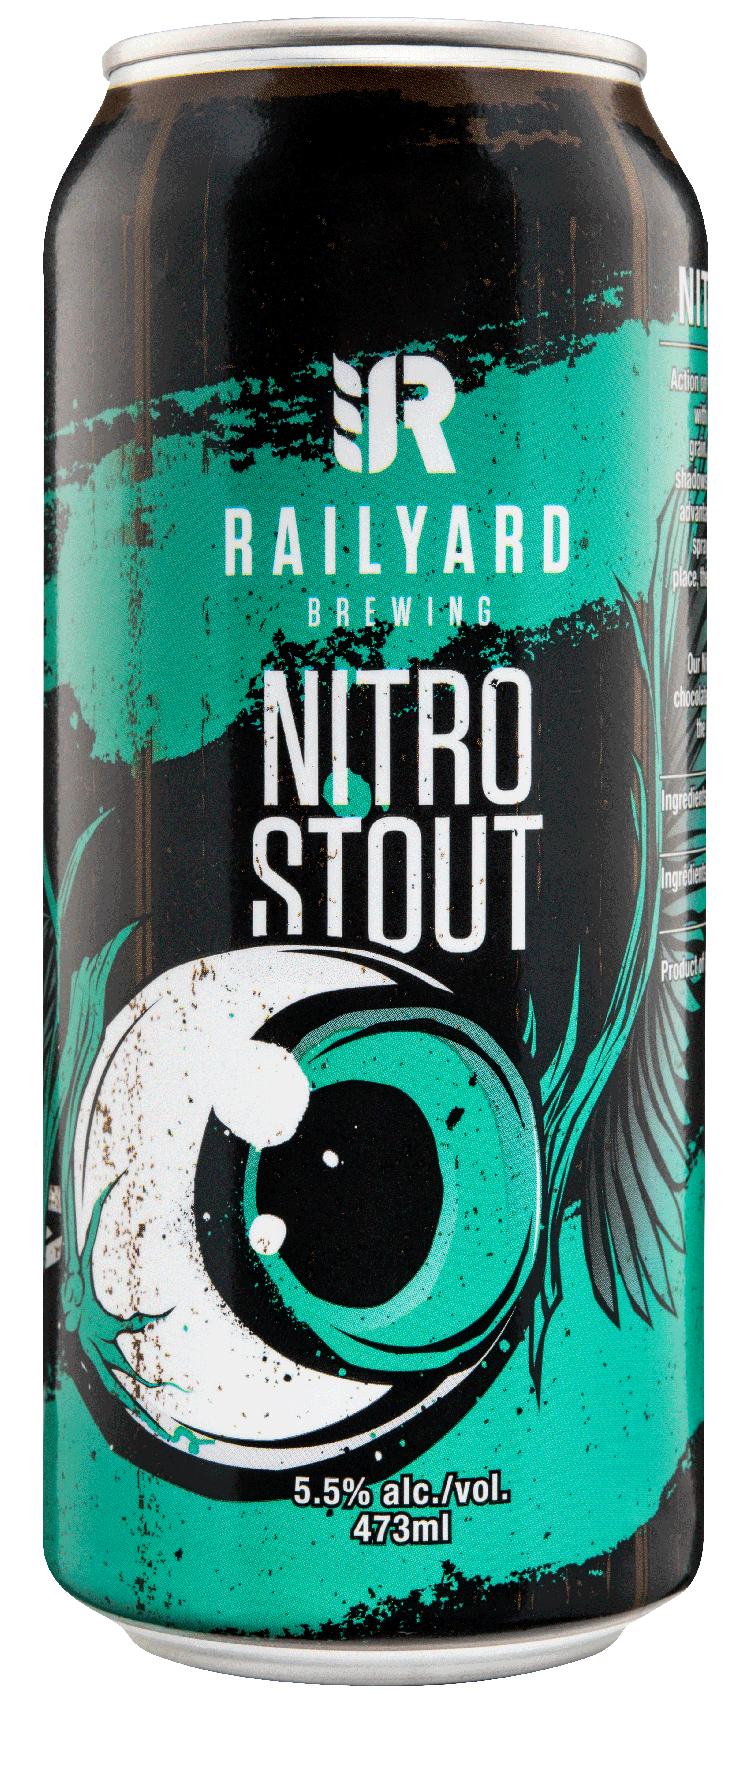 RAILYARD NITRO STOUT   The leading engine at Railyard & the only nitrogen packaged Stout coming out of Alberta. Rolling into the yard with bold coffee roast on the palate, underlying black molasses aromatics, balanced with light caramel sweetness & a nutty lingering. Rich, creamy & earthy, this flavour train doesn't stop for anyone.